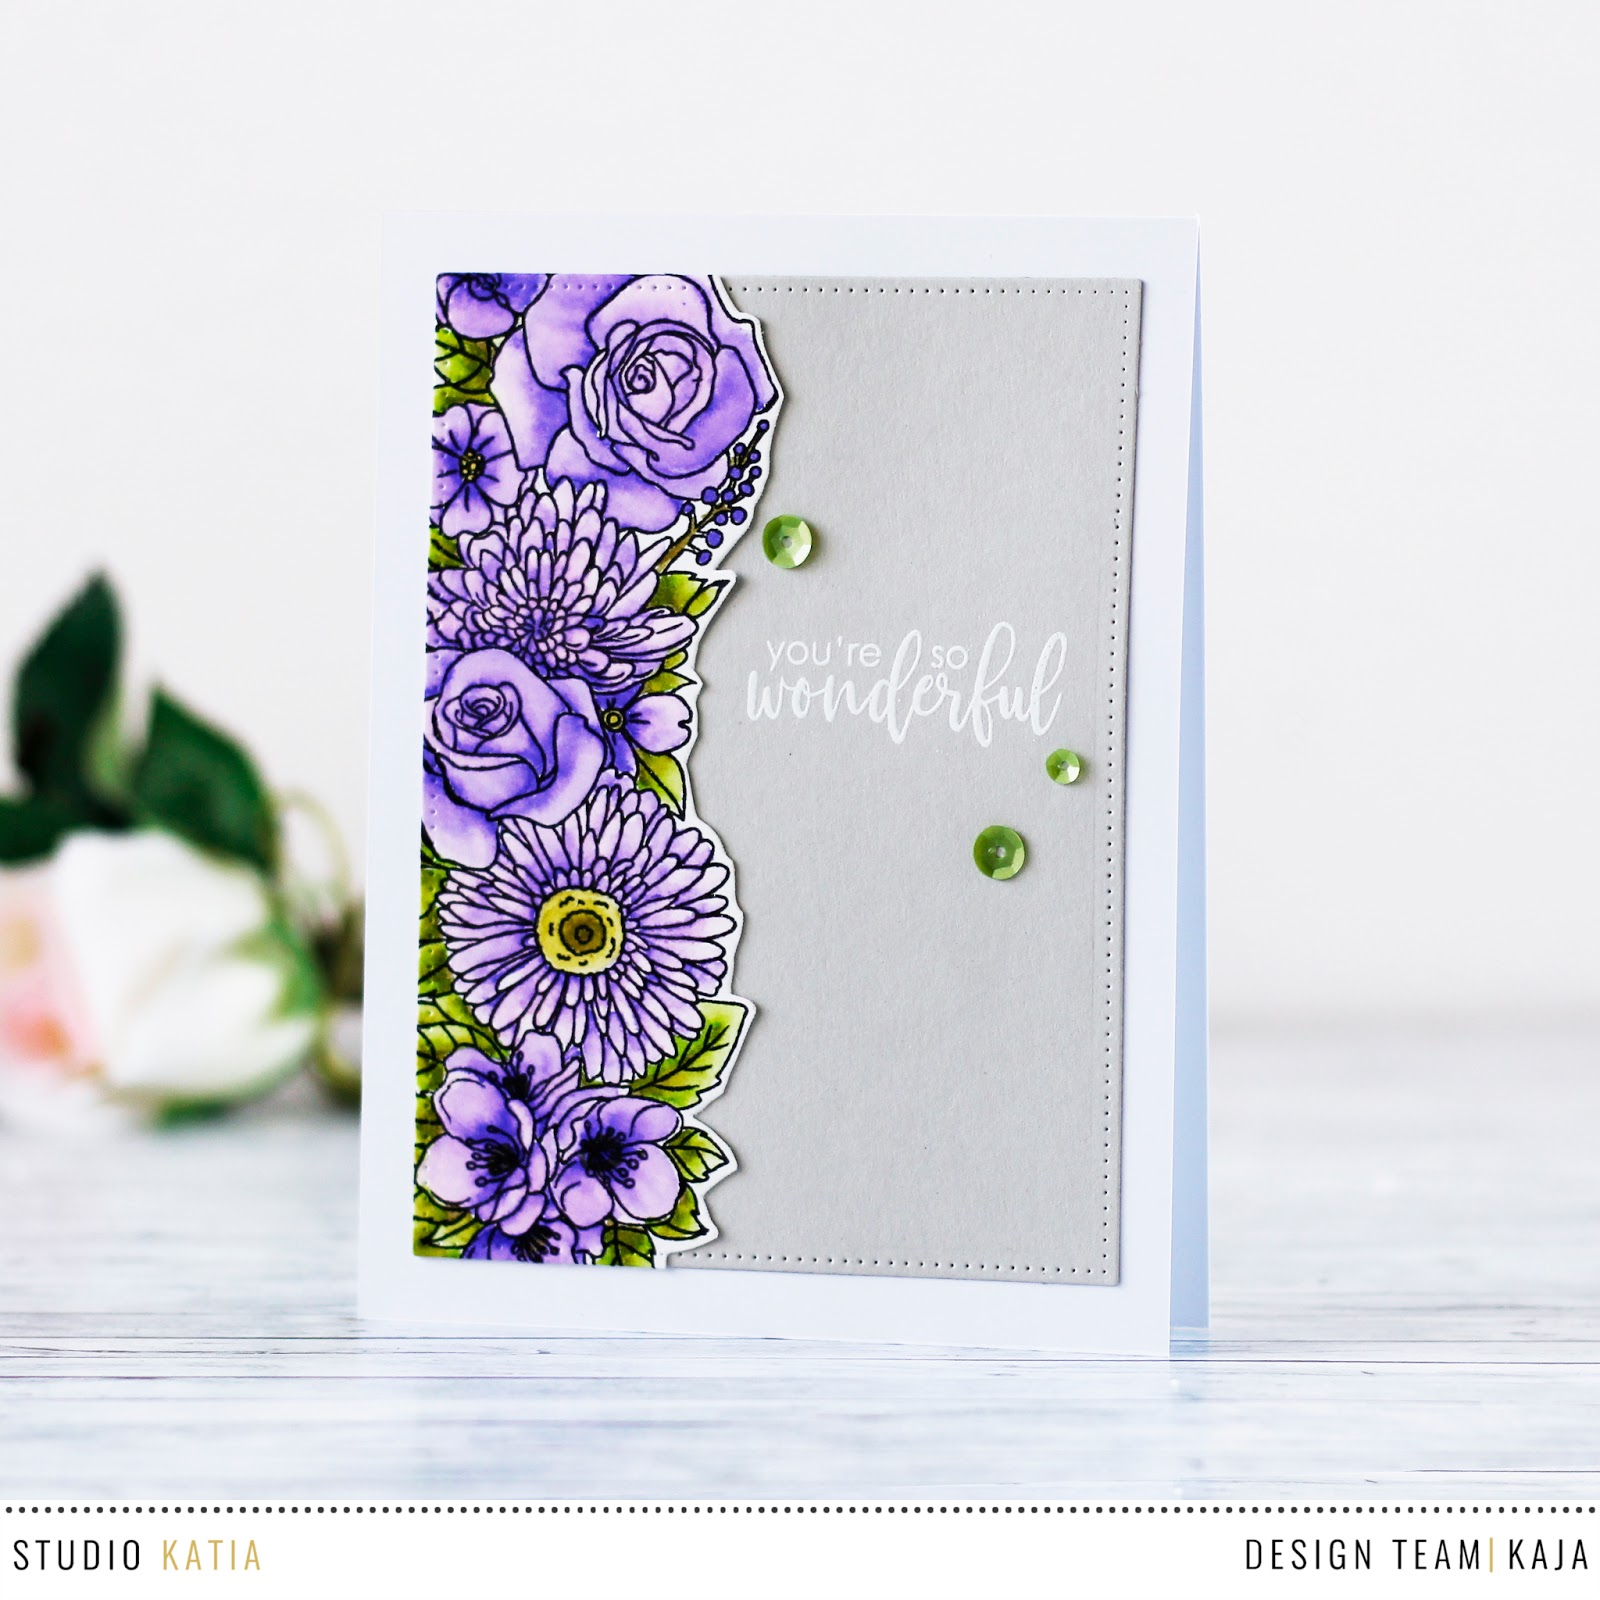 Watercolored flowers | STUDIO KATIA